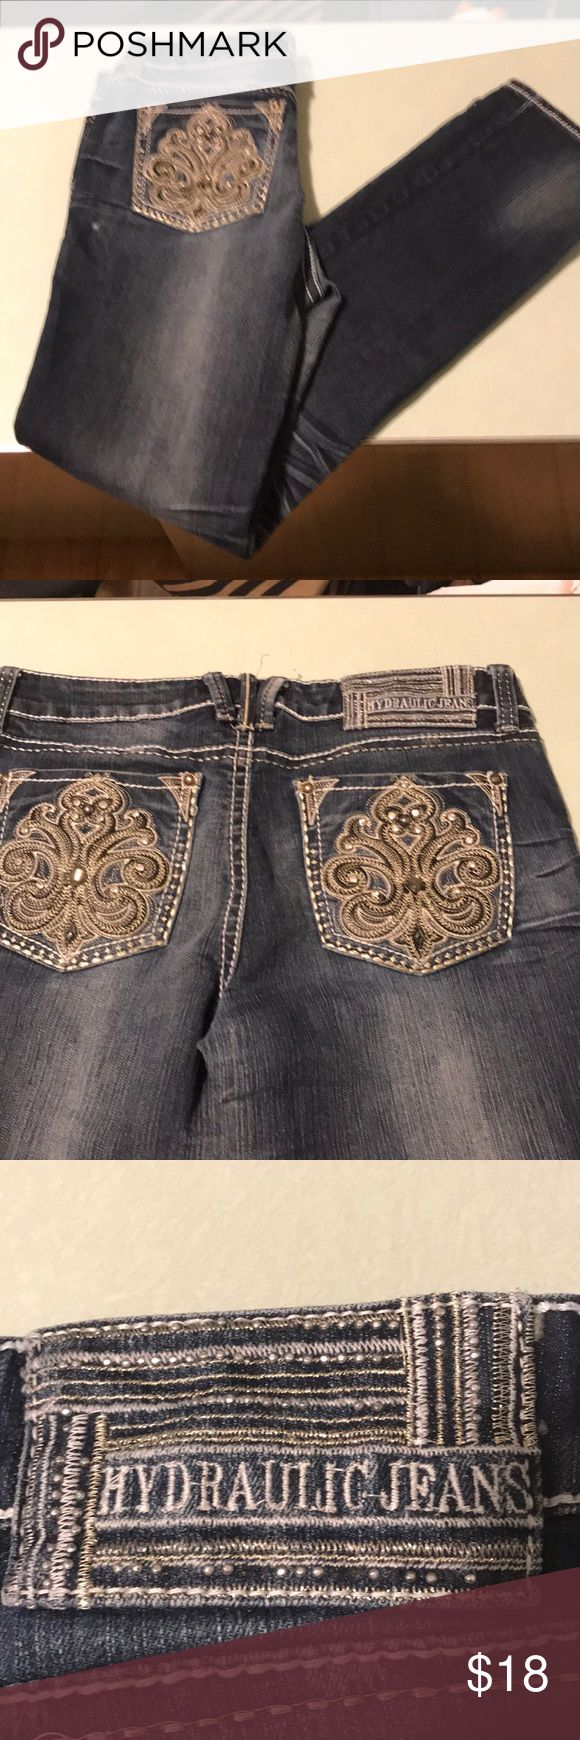 Hydraulic jeans Great condition pair of hydraulic jeans size 12 Jeans Straight Leg